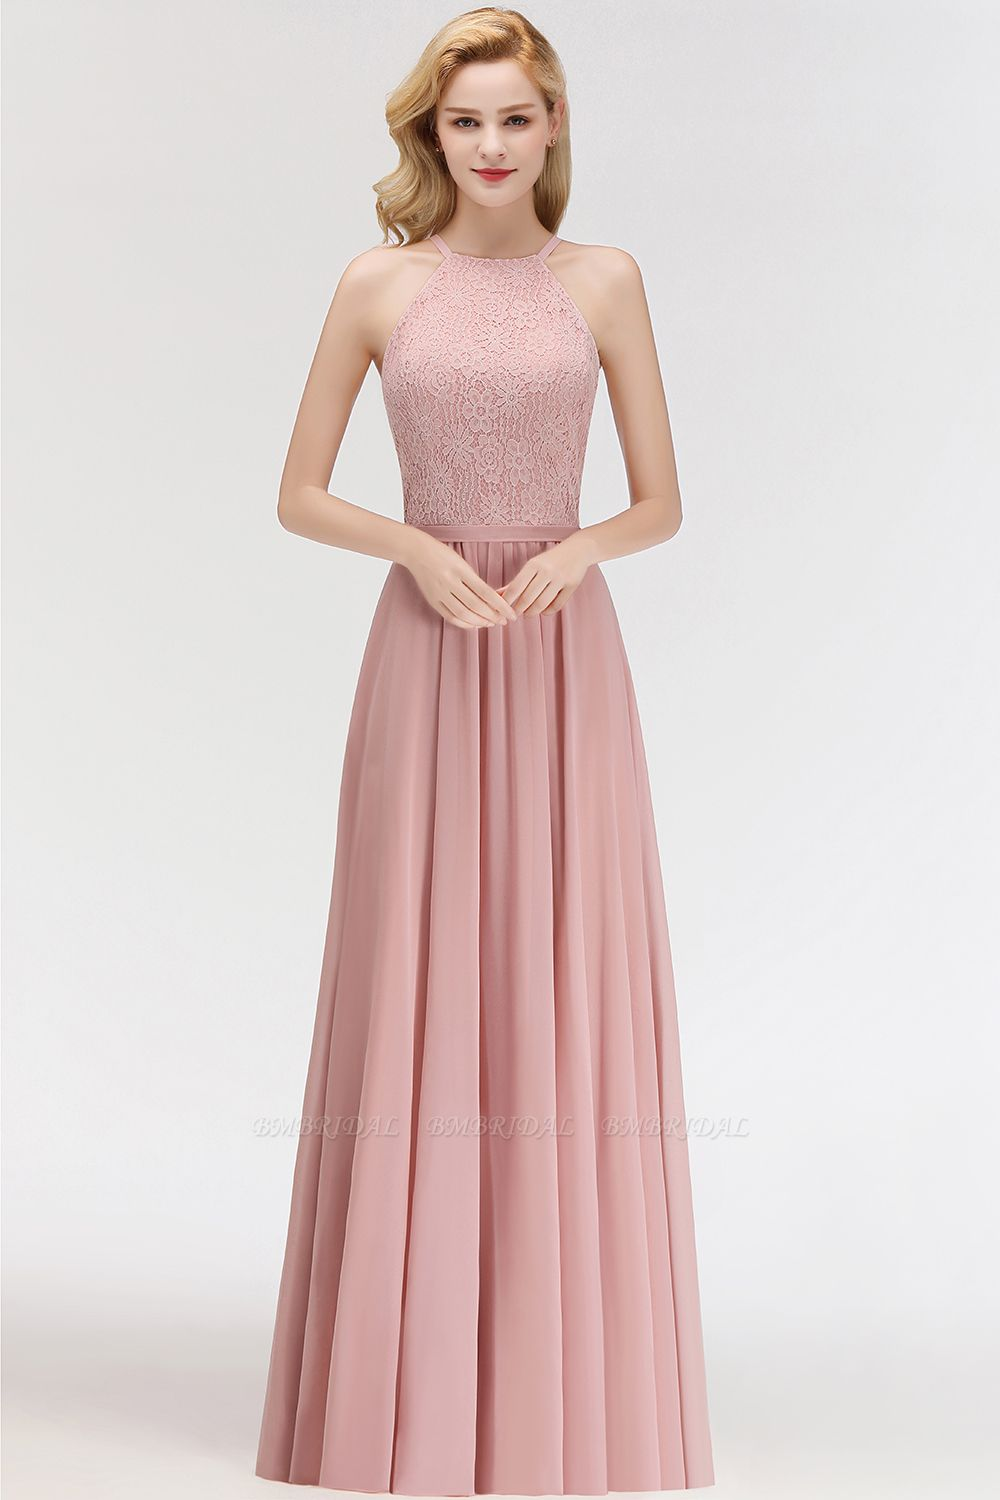 Gorgeous High-Neck Halter Lace Affordable Bridesmaid Dress with Ruffle